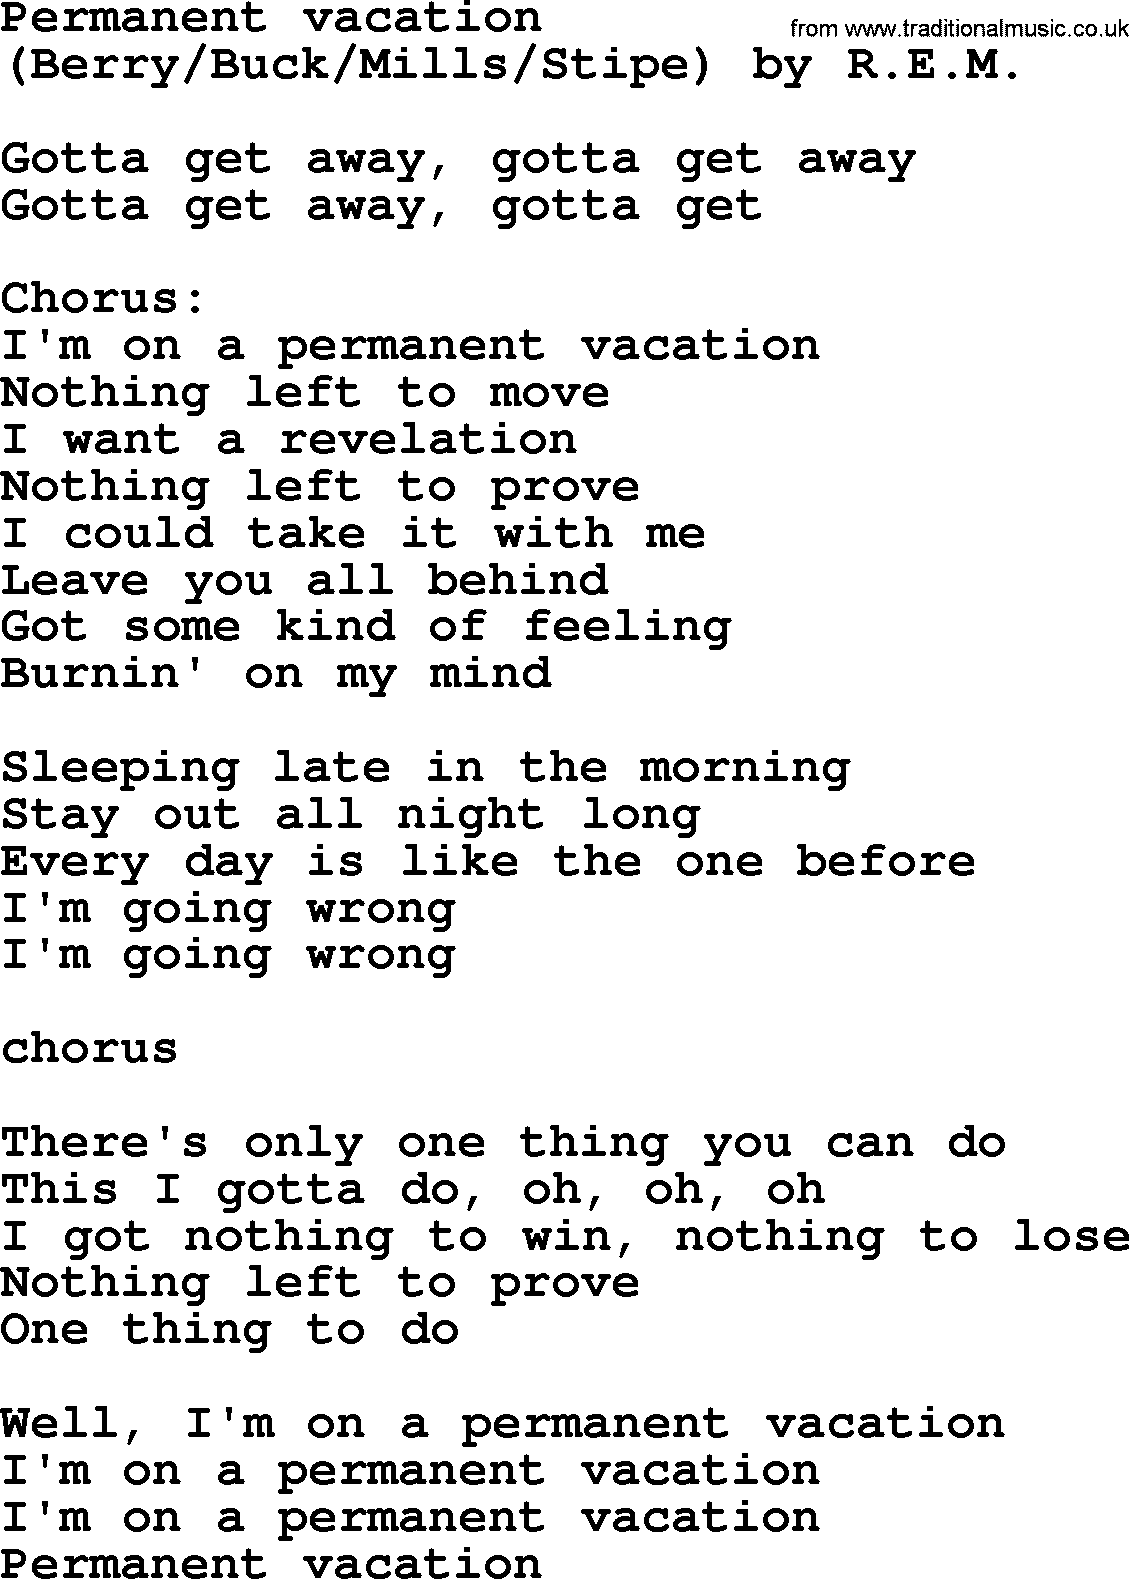 Bruce Springsteen song: Permanent Vacation, lyrics